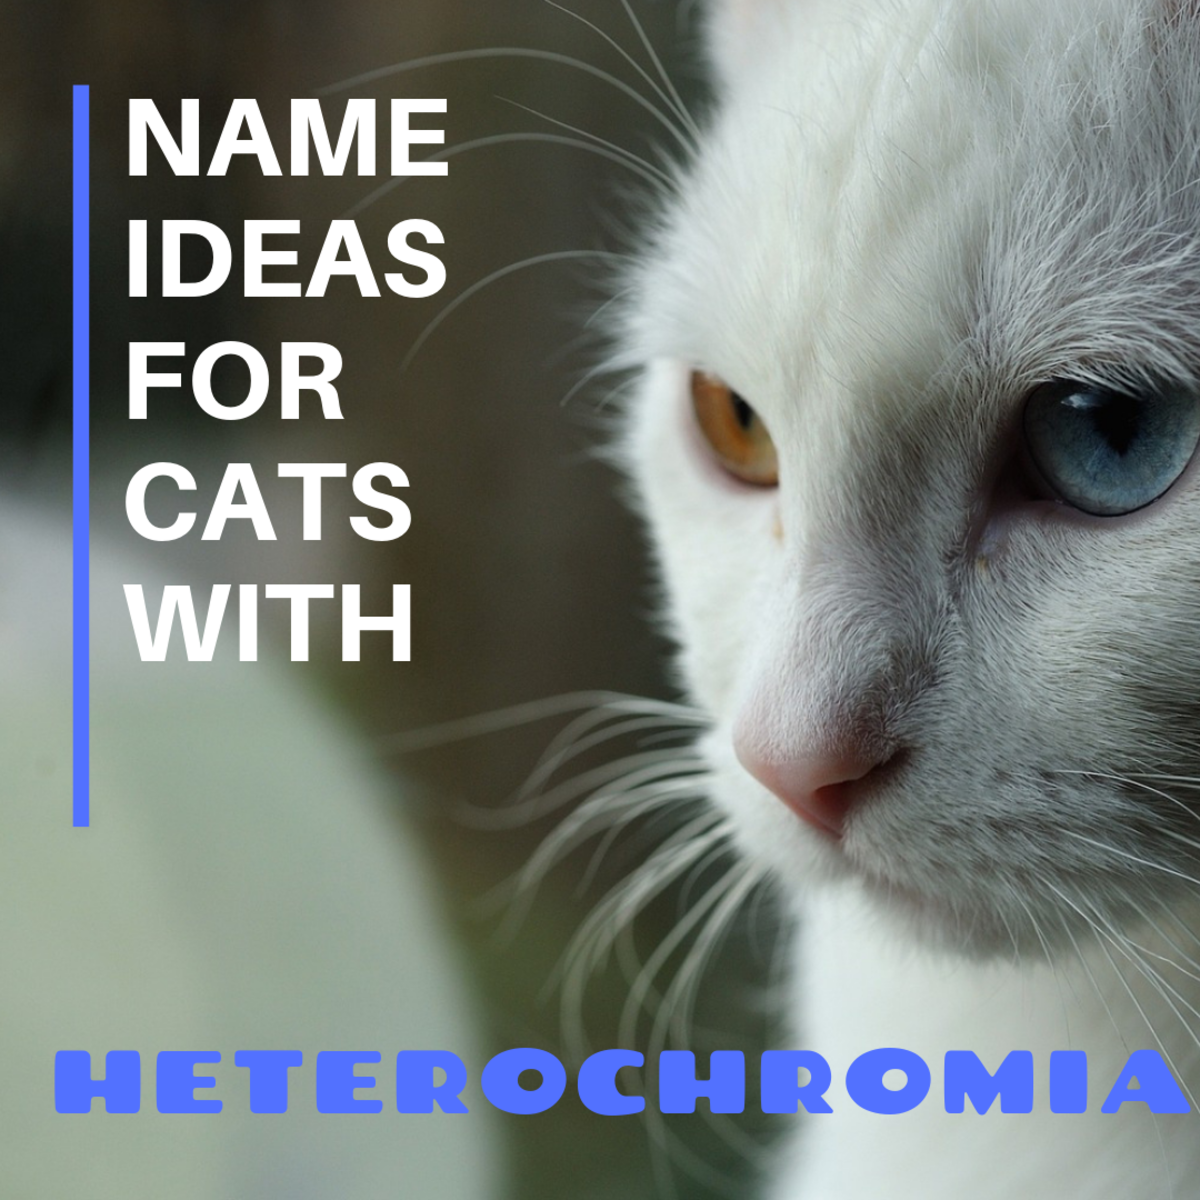 150+ Names for Cats With 2 Different-Colored Eyes (Heterochromia)